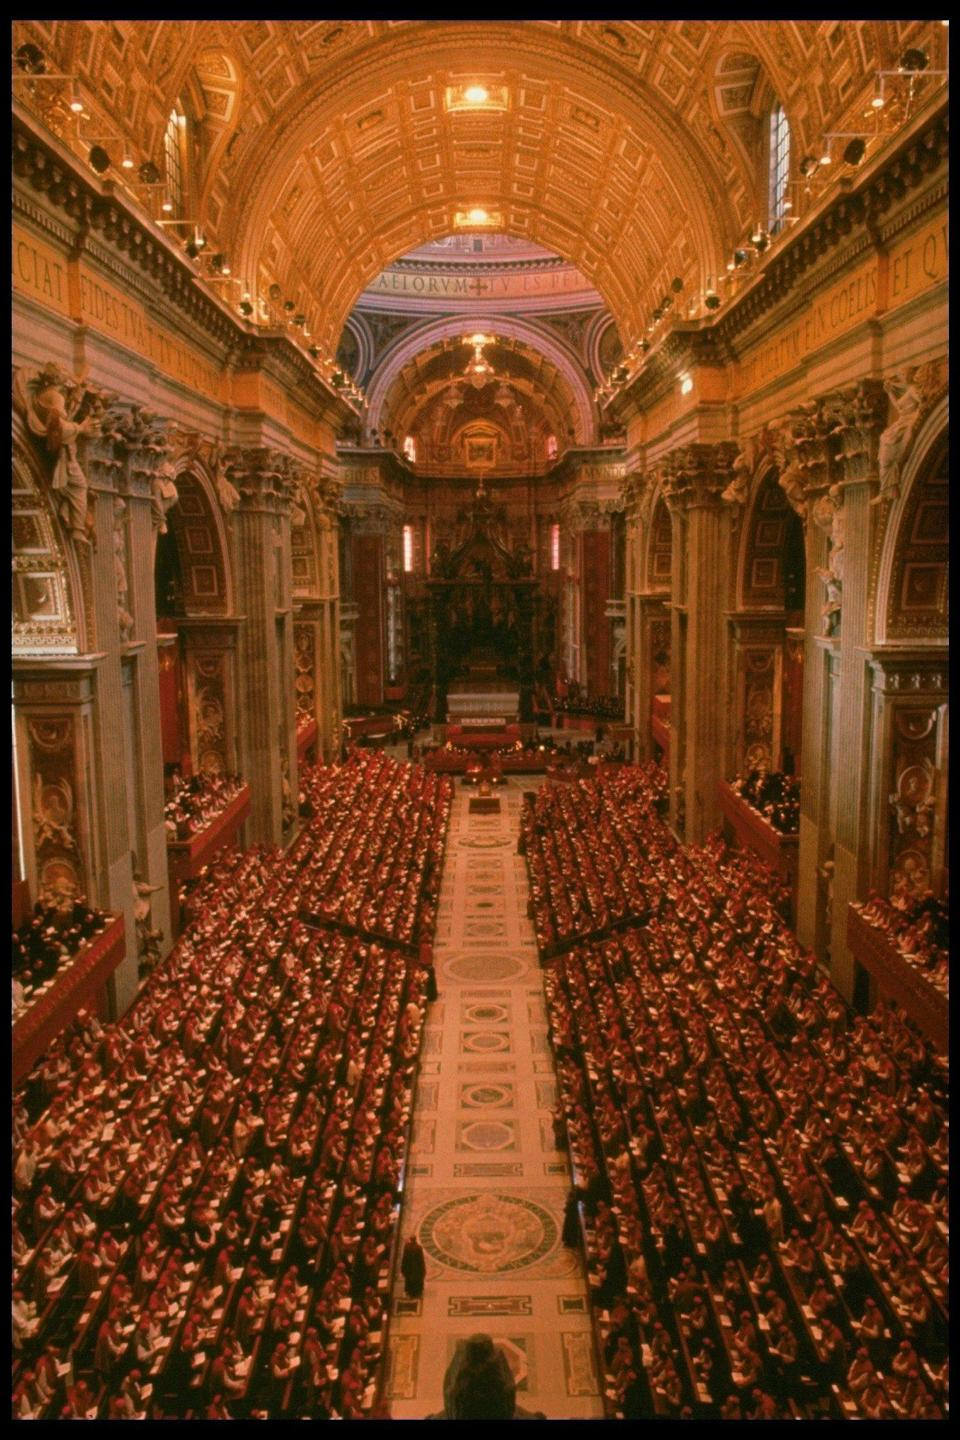 The Second Vatican Council in session in St Peter's: Küng's ideas for reform influenced the council in its early stages until Pope John XXIII was succeeded by the more conservative Pope Paul VI -  Carlo Bavagnoli /The LIFE Images Collection via Getty Images